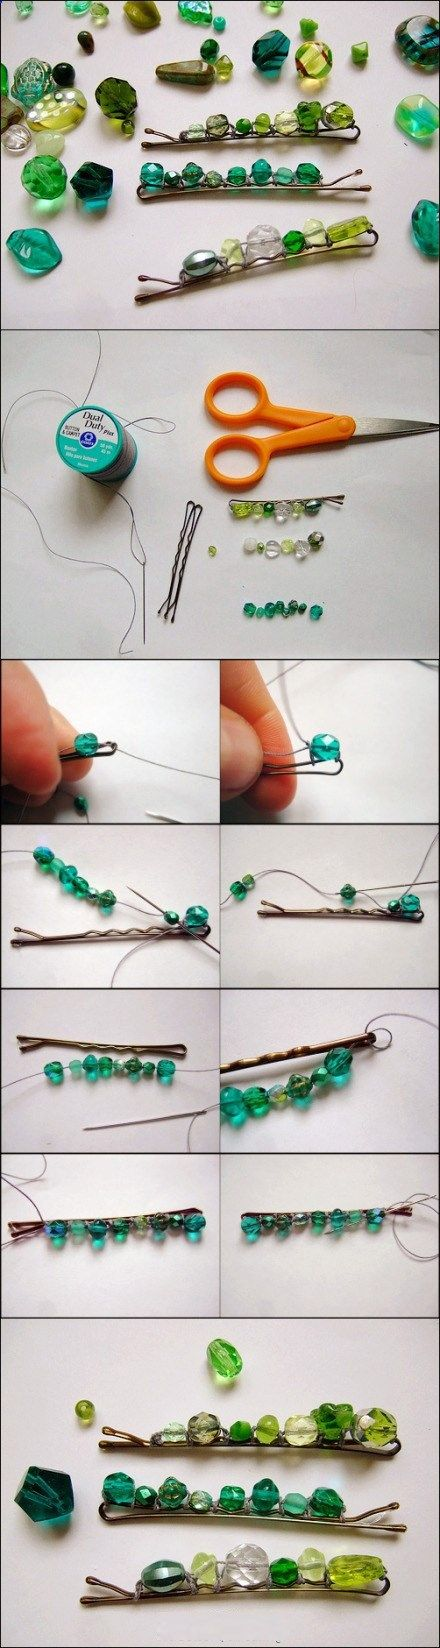 Hair Clips - This has infinite possibilites.. Pretties for Pennies! Again, perfect for little girls. Could this work on clippies?